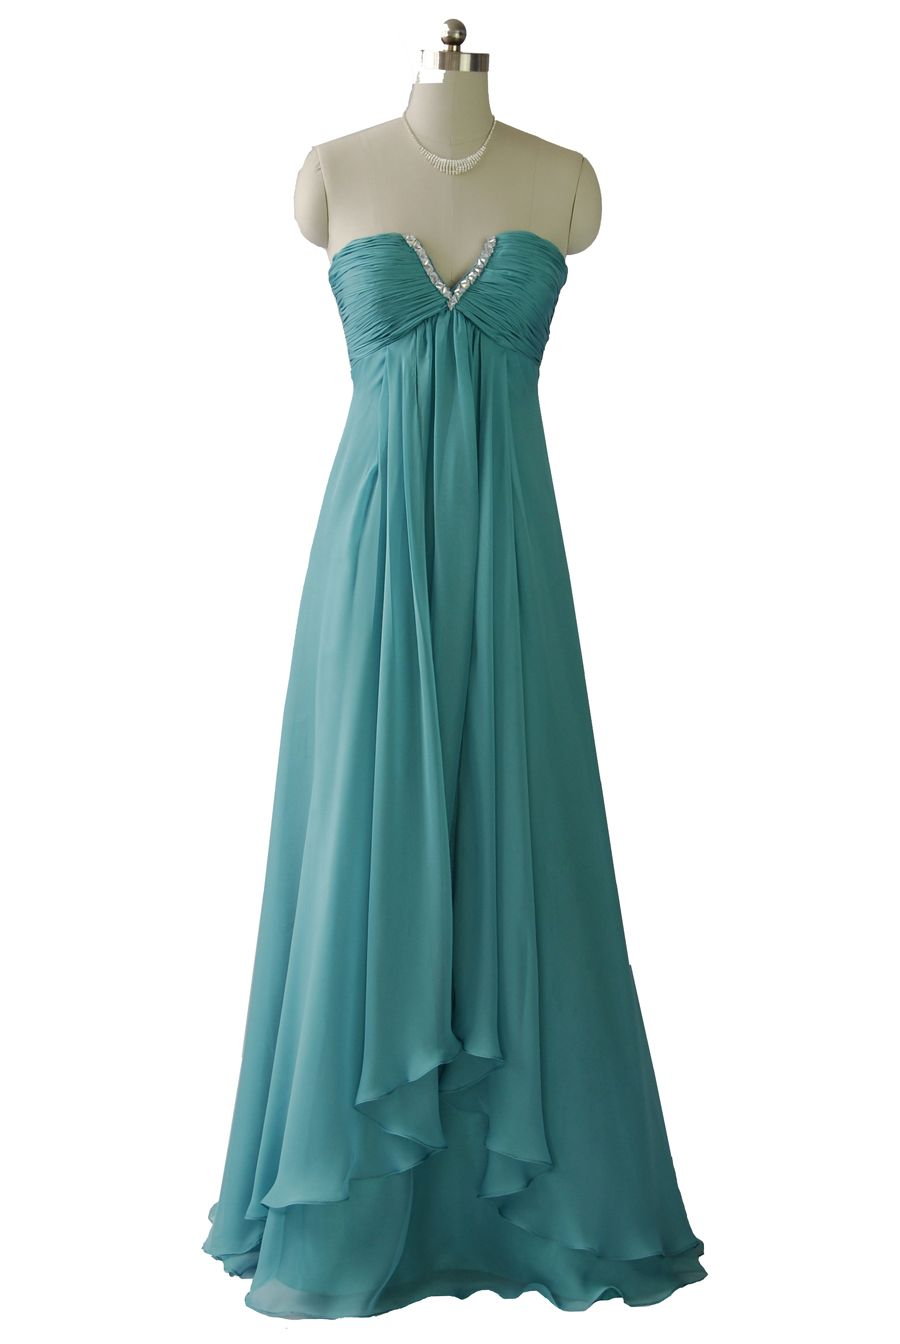 Qpid Showgirl Aqua Green Strapless Maxi Gown Evening Dress Prom ...